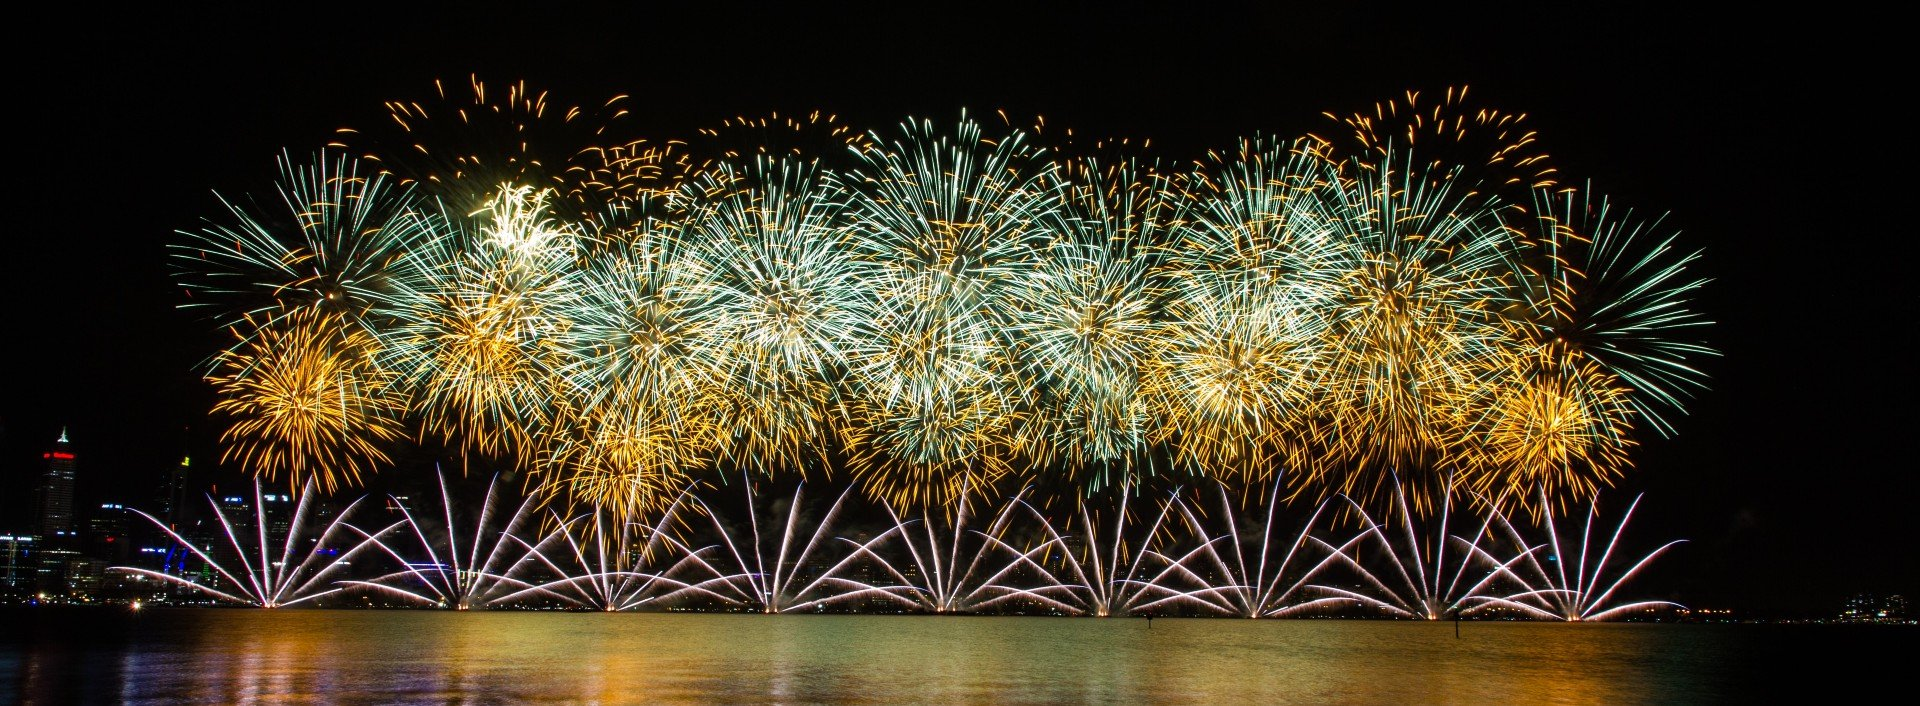 Phrasal verb to go off: Fireworks go off over a body of water.